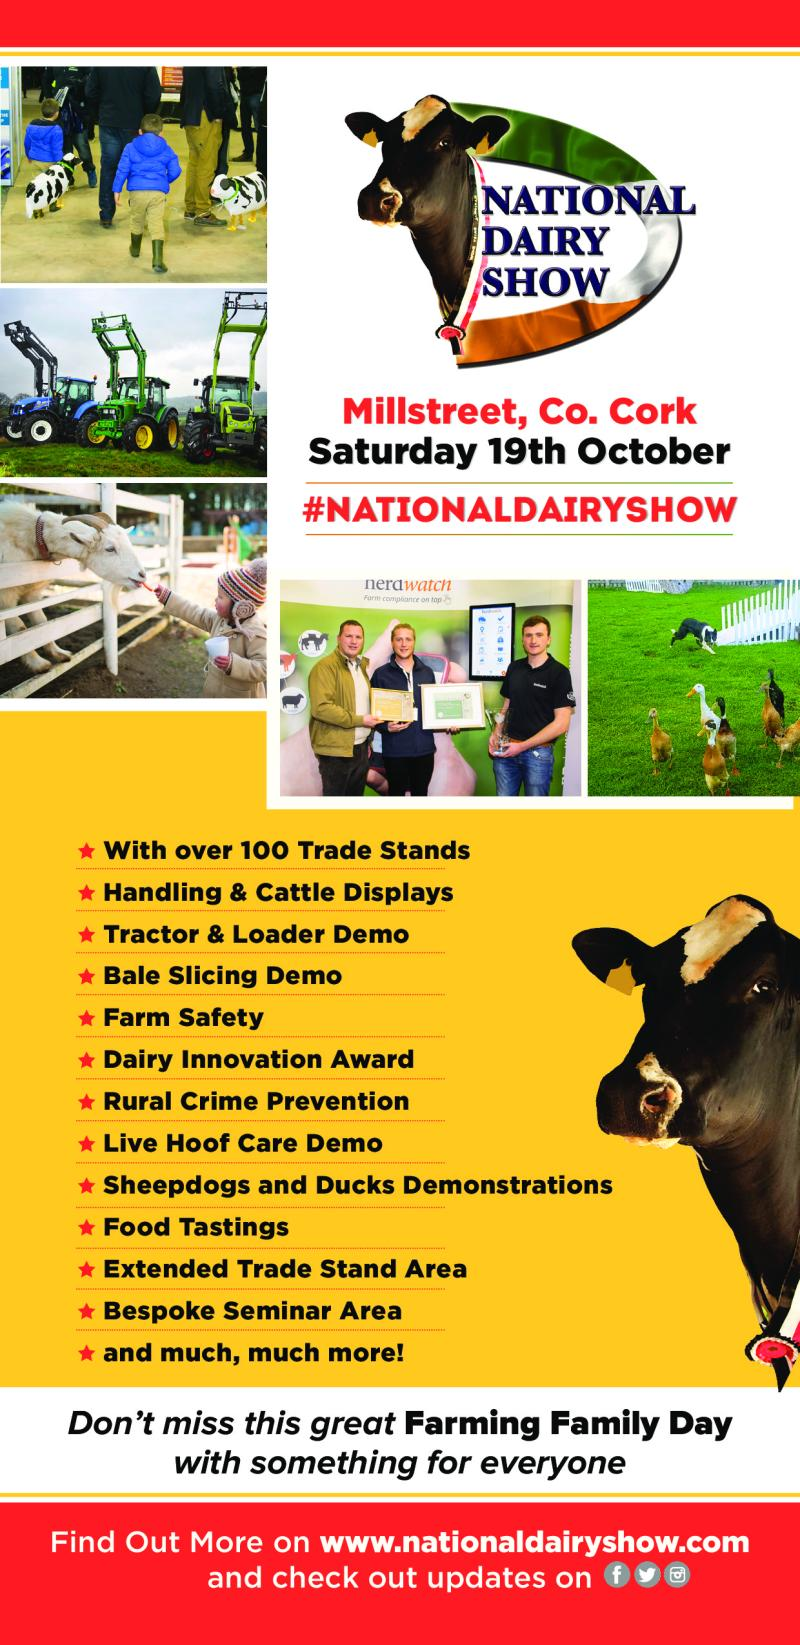 Poster promoting National Dairy Show